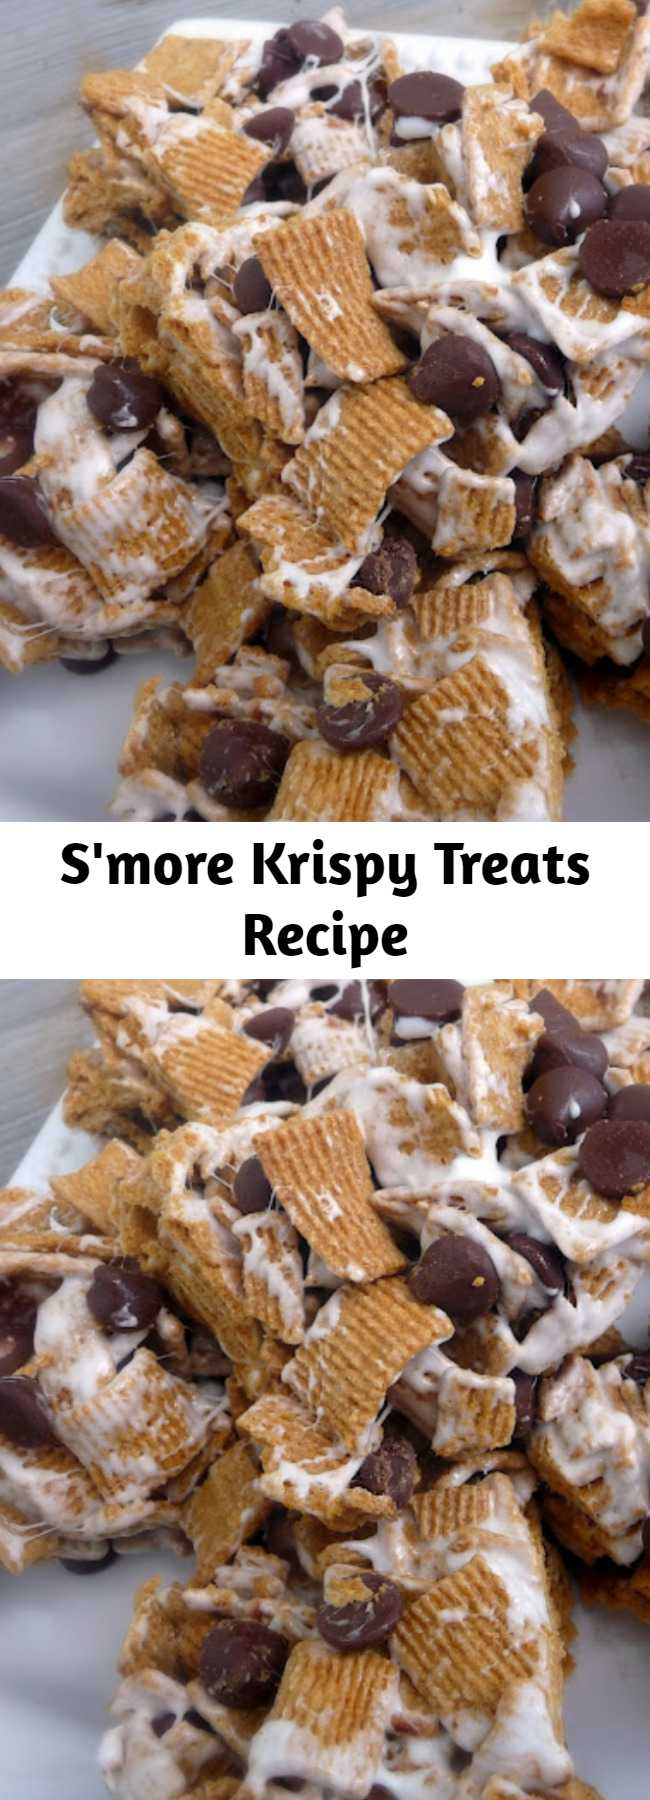 S'more Krispy Treats Recipe - These S'mores bars are incredible! So easy to make and completely delicious!